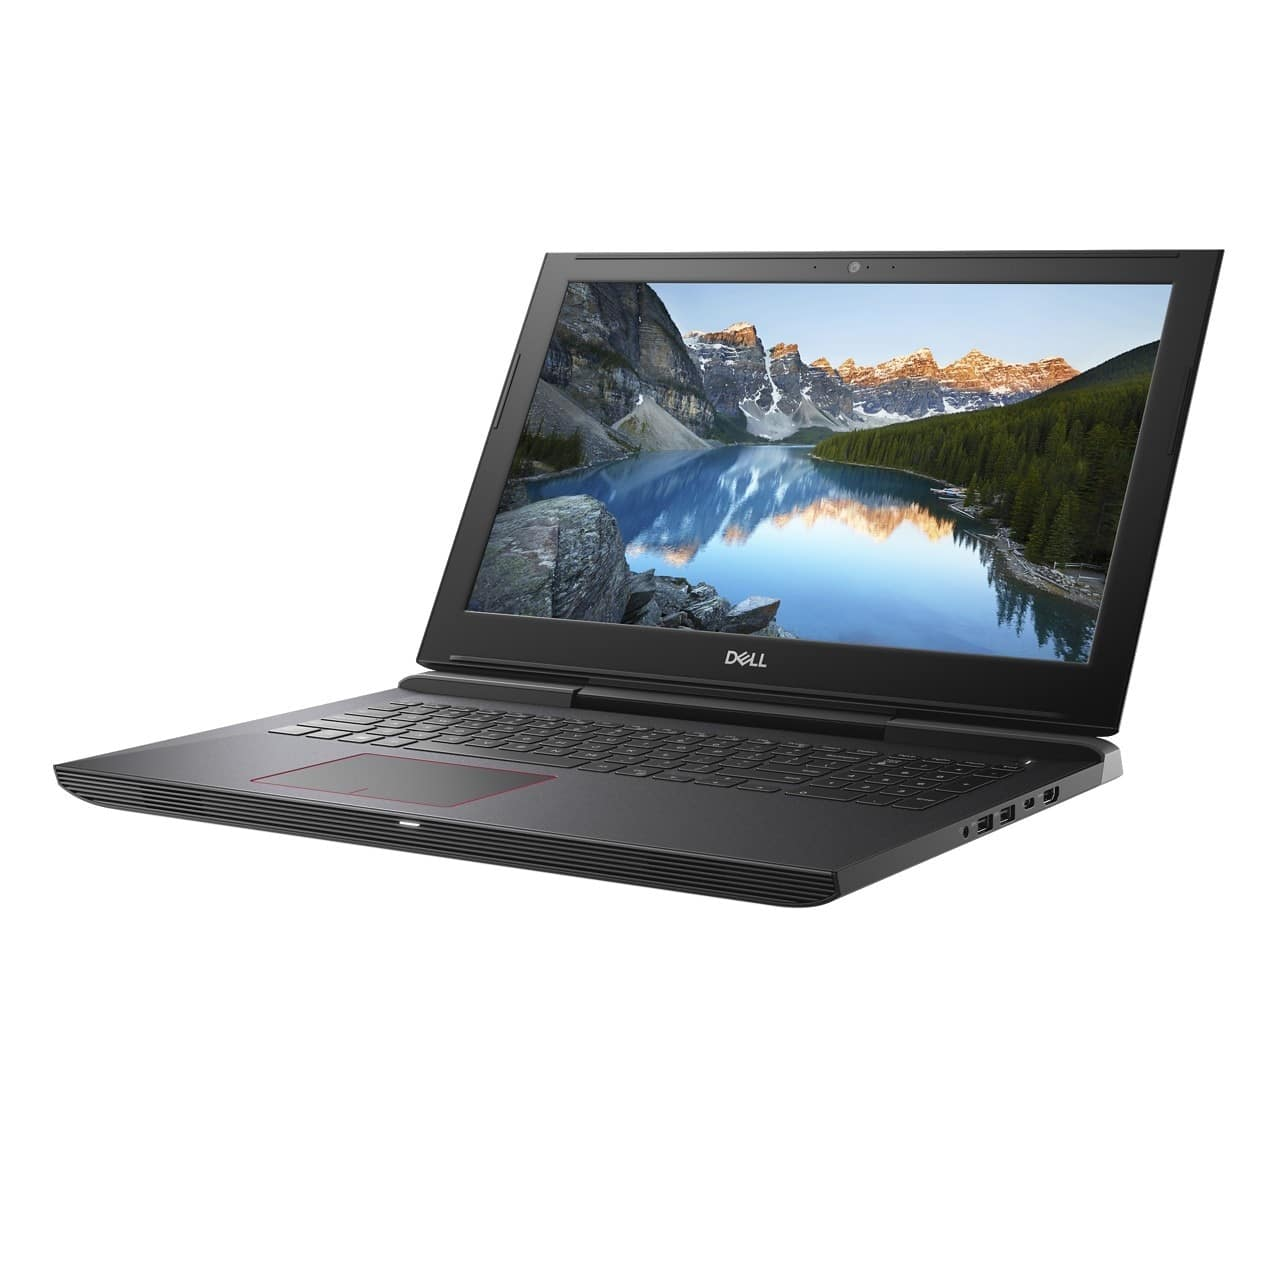 Dell Outlet Refurbished Inspiron 7577: 7300HQ, GTX 1060 Q MAX, 8 GB, 256 SSD - $617 after coupon Inspironlt15 and referal 5% coupon